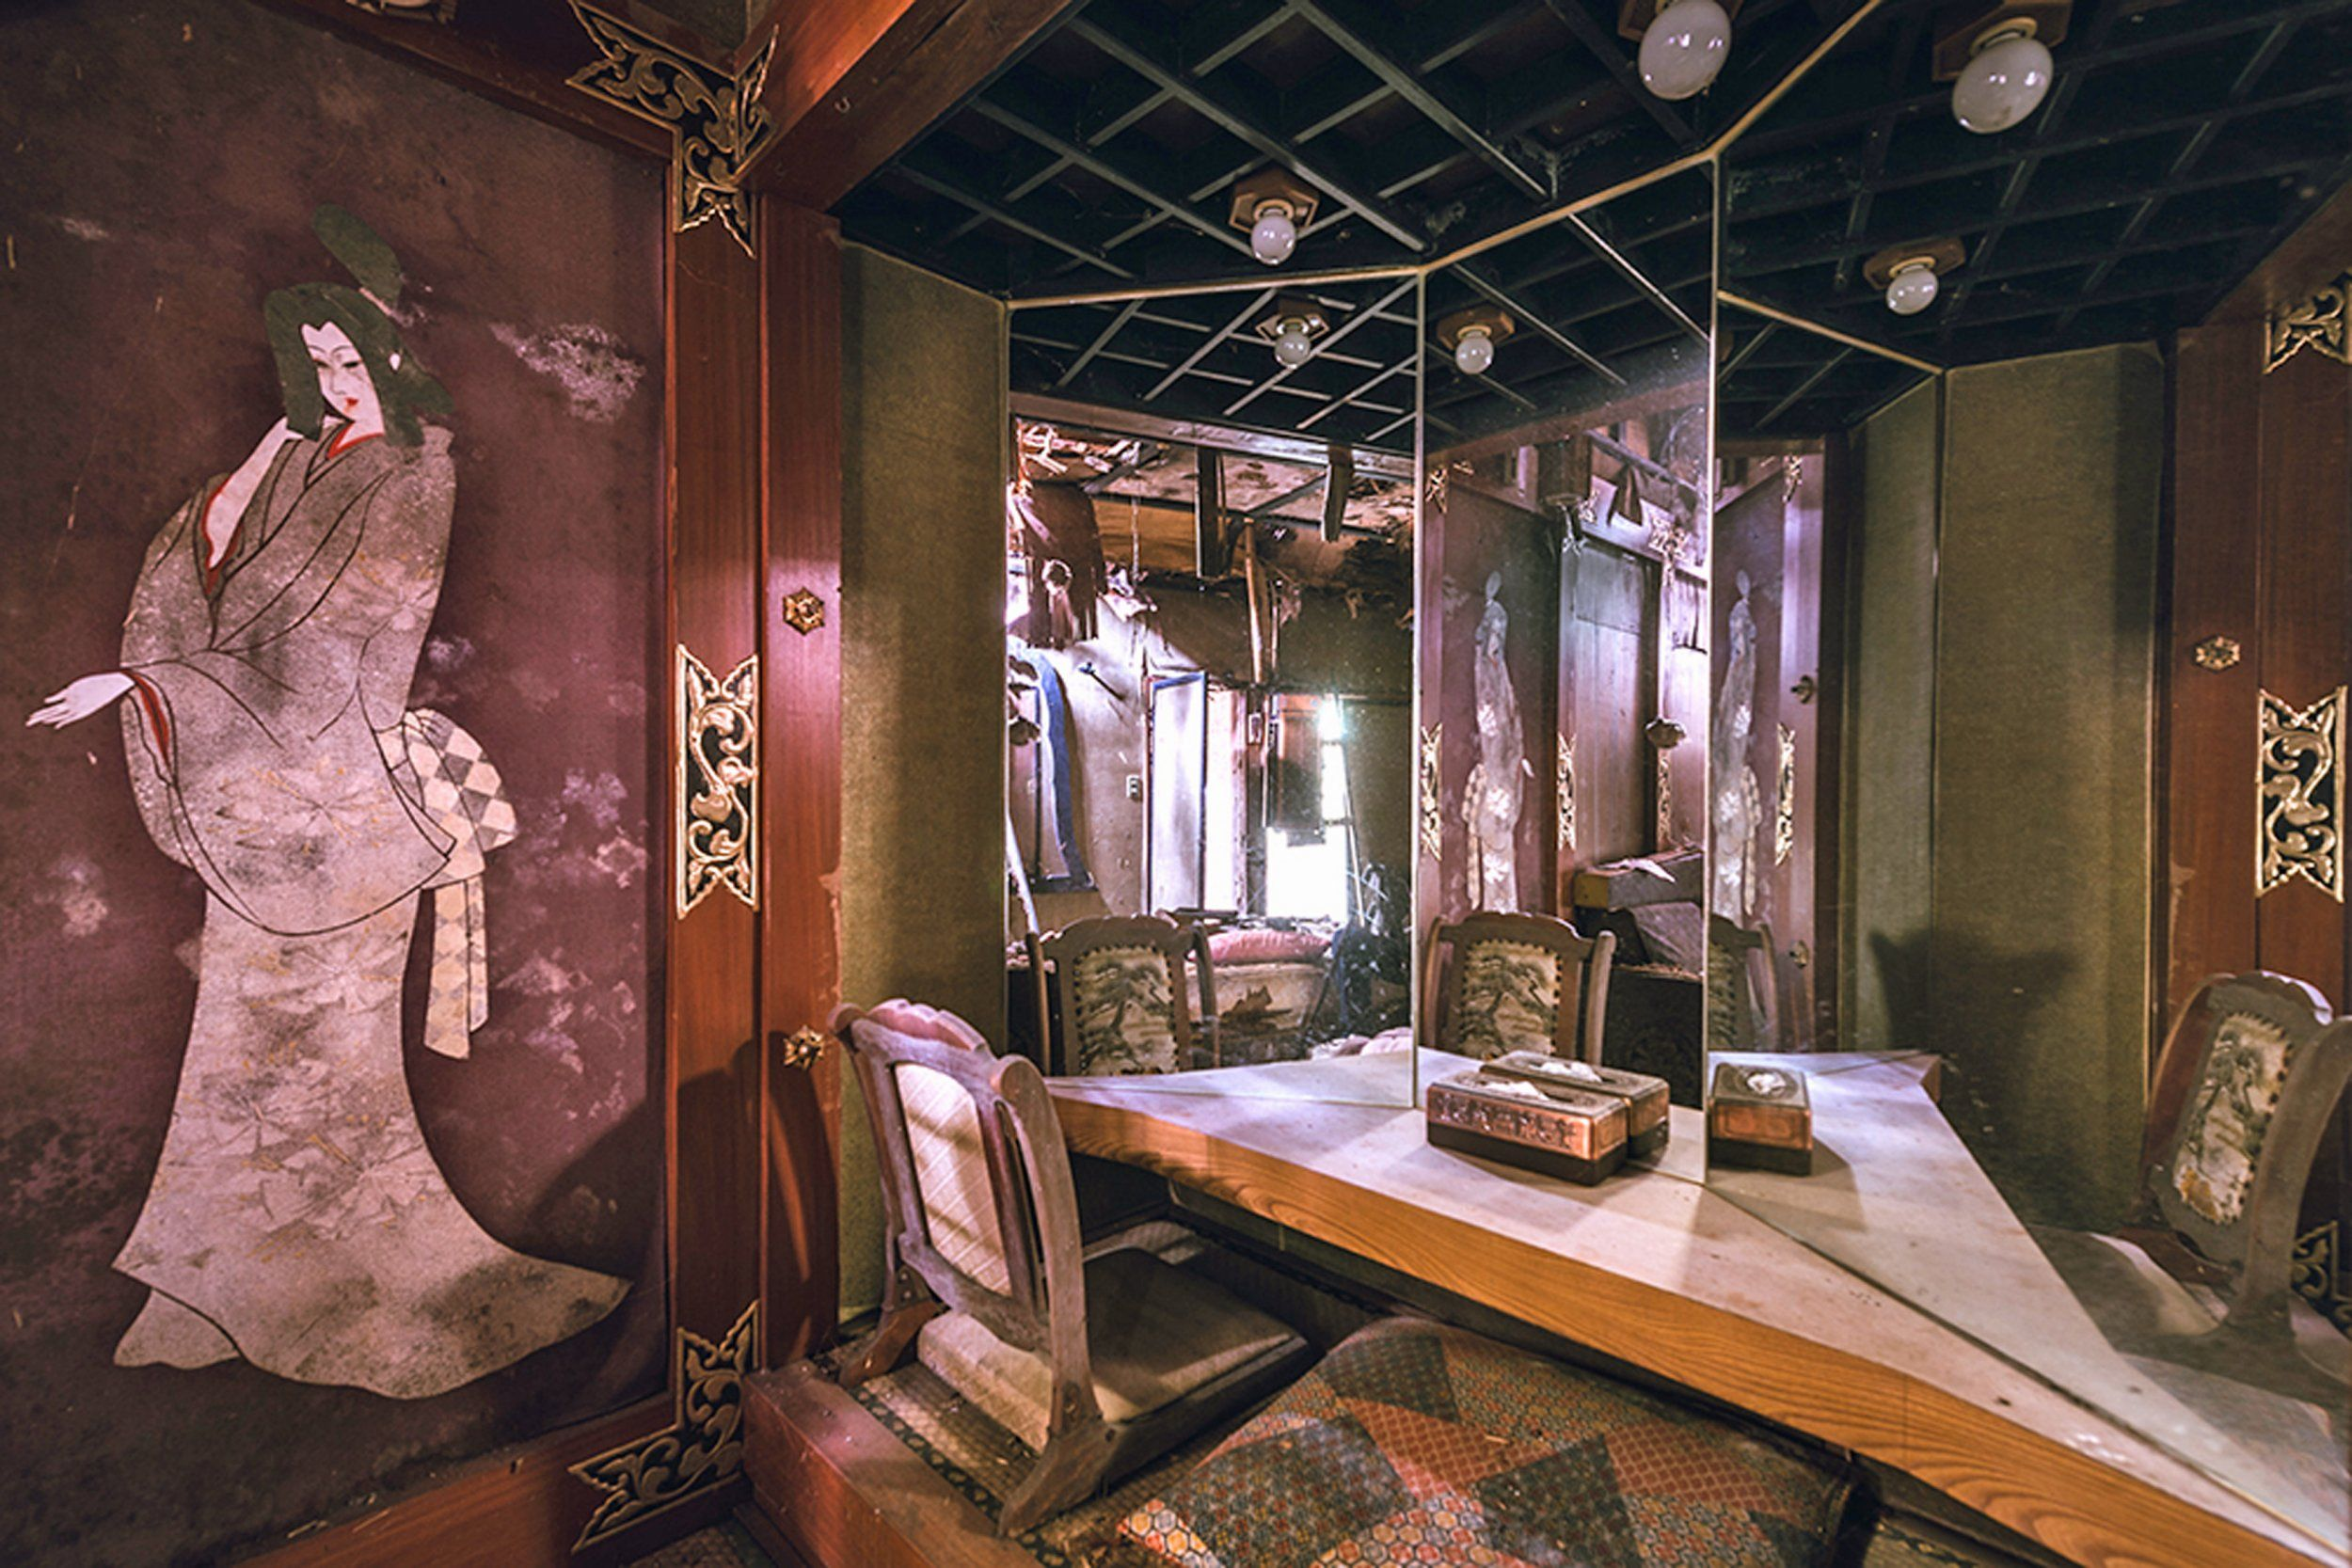 Take A Look Inside An Abandoned Love Hotel In Japan Creepy Gallery